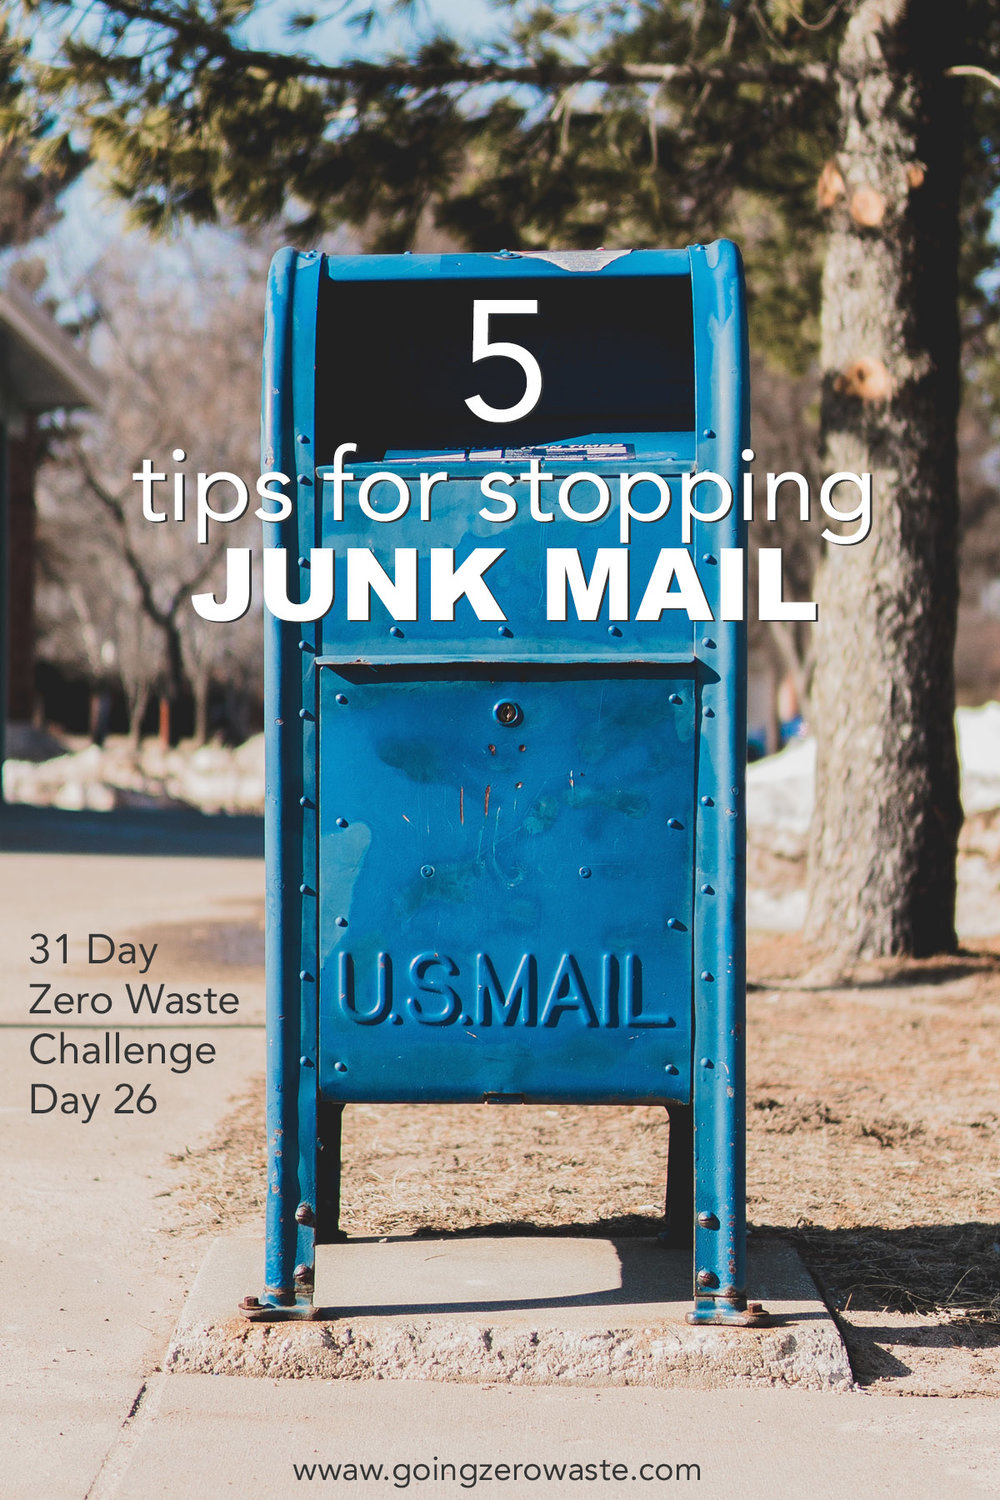 5 tips for stopping junkmail from the zero waste challenge from www.goingzerowaste.com #zerowaste #zerowastechallenge #junkmail